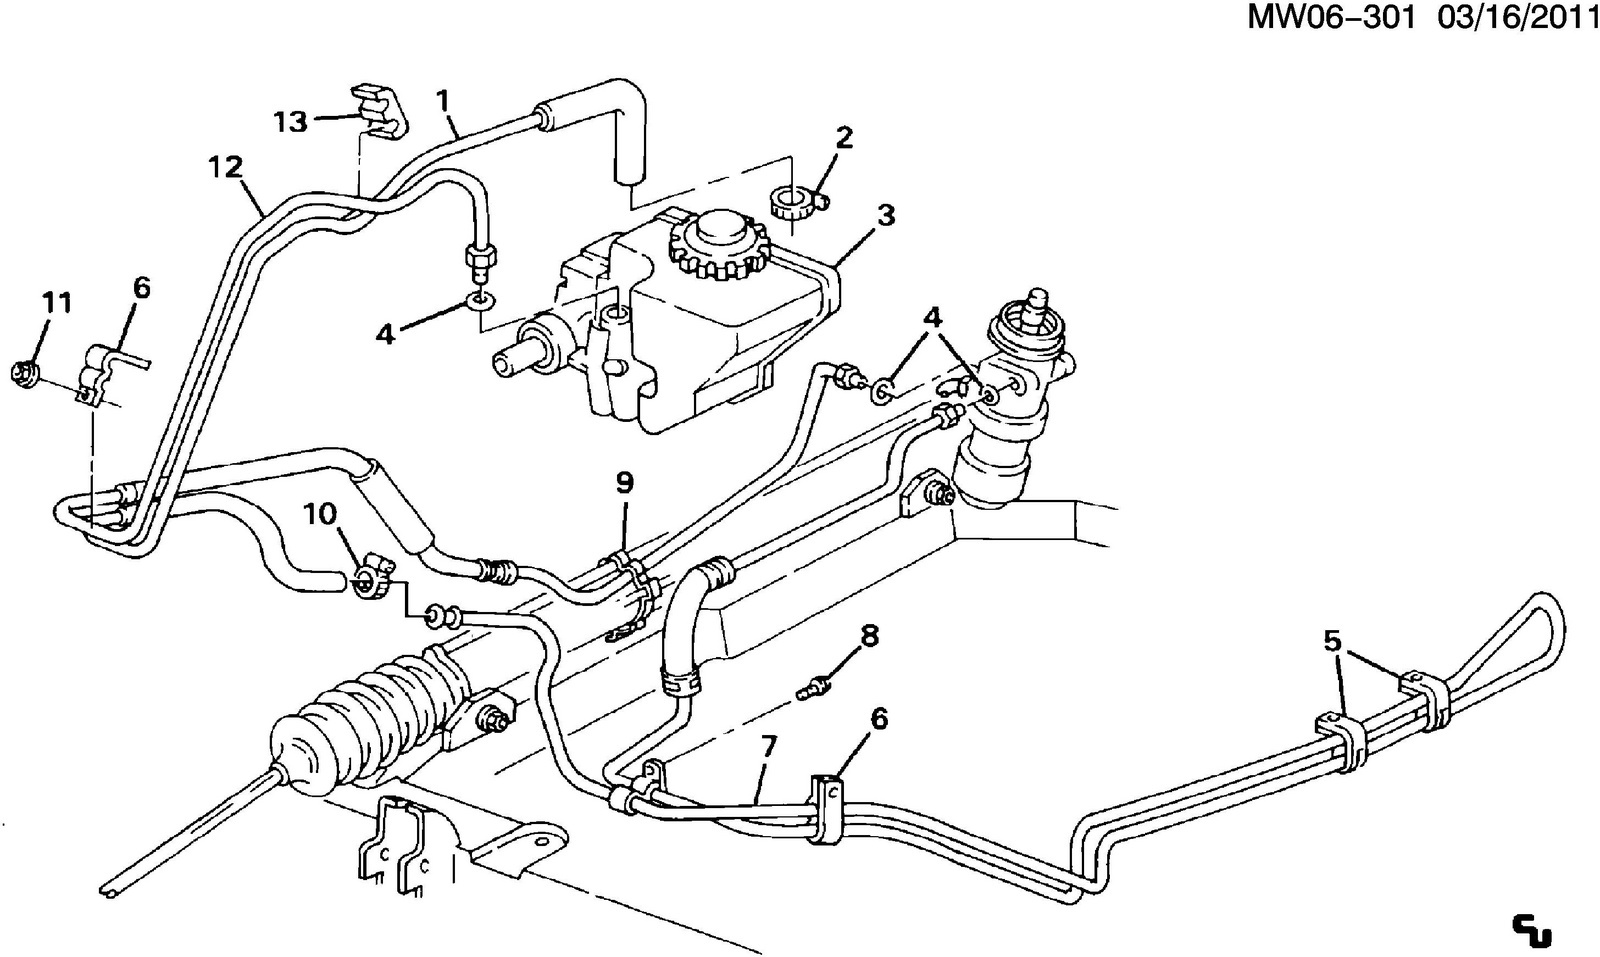 Discussion T16816 ds577757 on 2000 pontiac grand prix vacuum line diagram